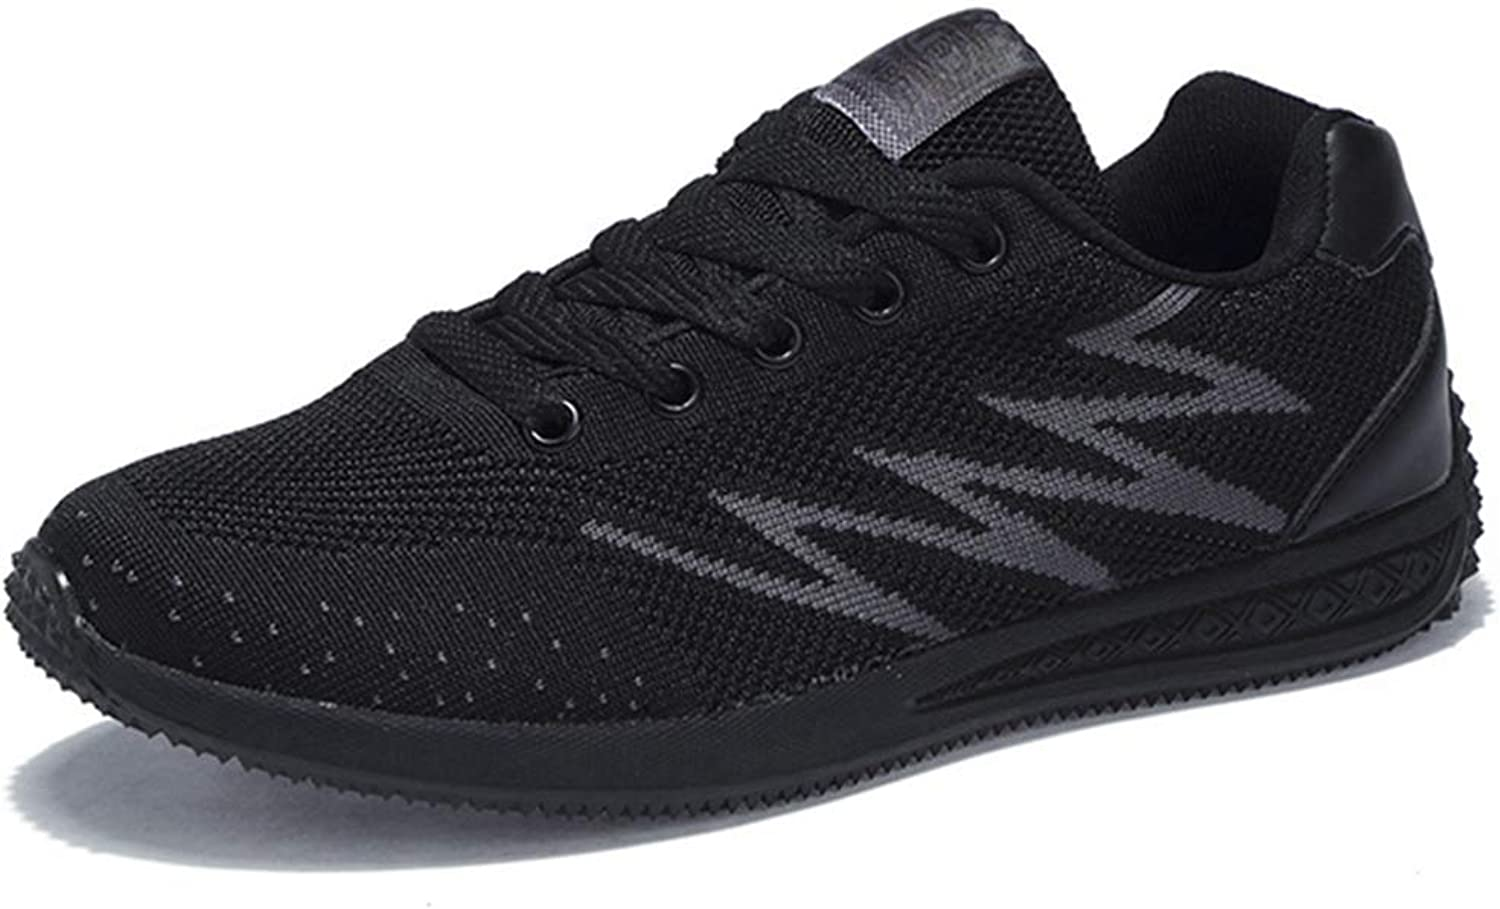 Beautiful - Fashion Women's Flat Sneakers Comfortable Breathable Lace-up Casual Platform Tennis Air Fitness Walking Sports shoes